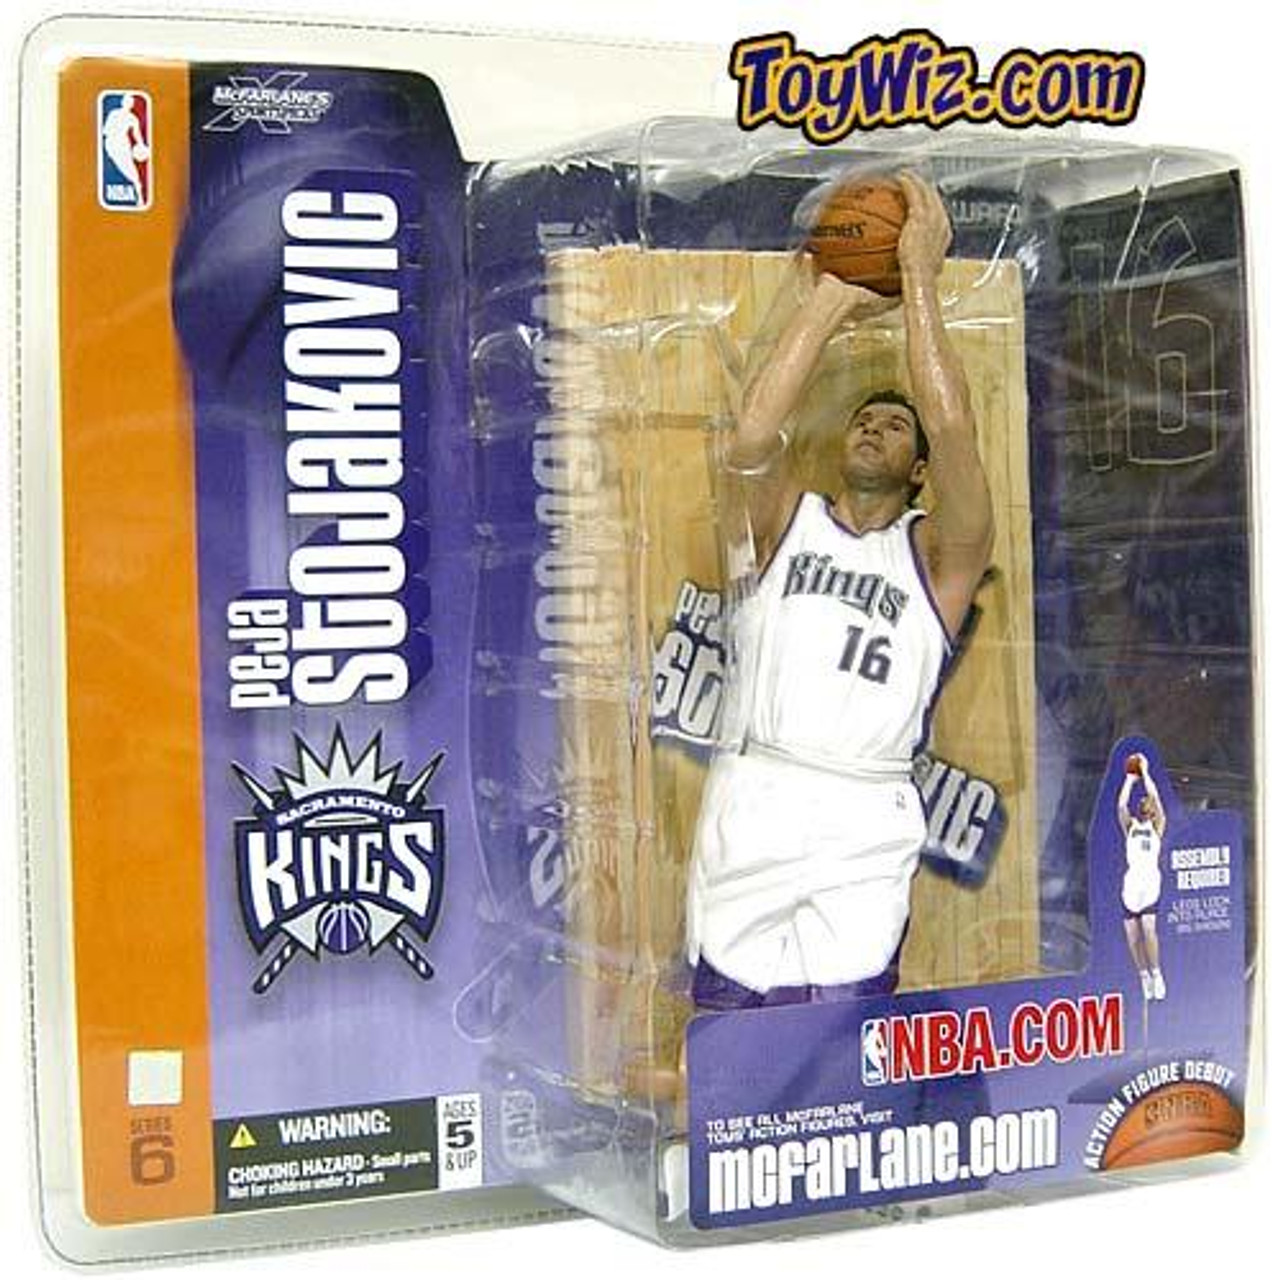 McFarlane Toys NBA Sacramento Kings Sports Picks Series 6 Peja Stojakovic Action Figure [White Jersey, Damaged Package, Mint Contents!]